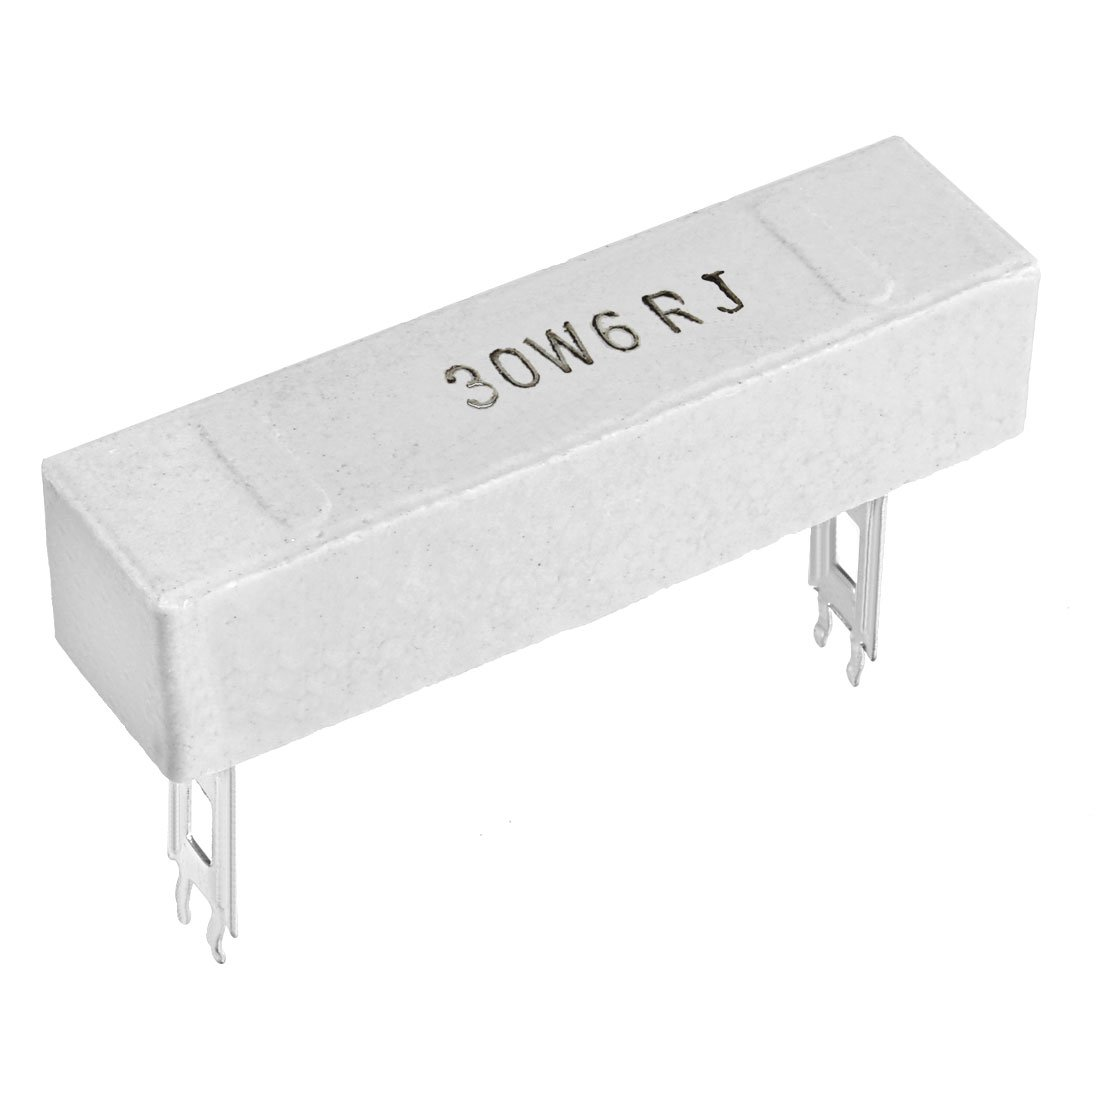 uxcell 5W 68k Ohm Power Resistor Ceramic Cement Resistor Axial Lead 15Pcs White